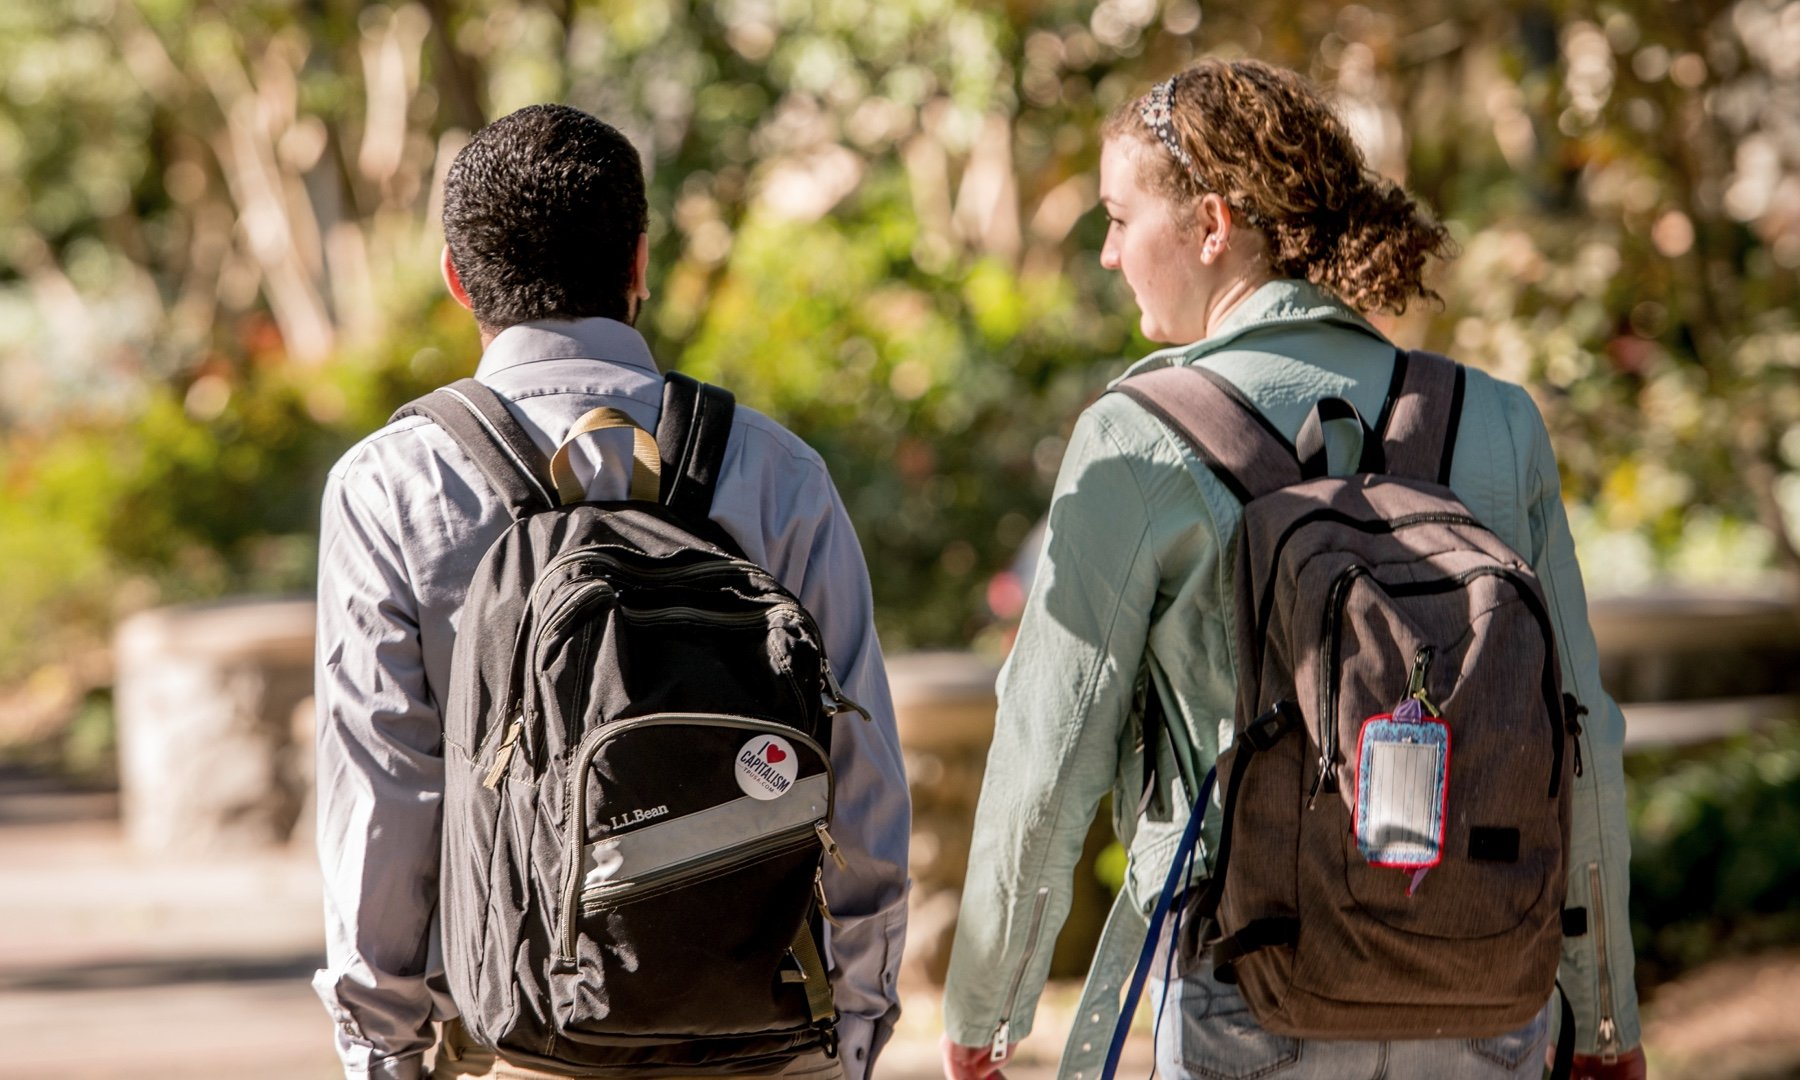 Two students walking on campus together